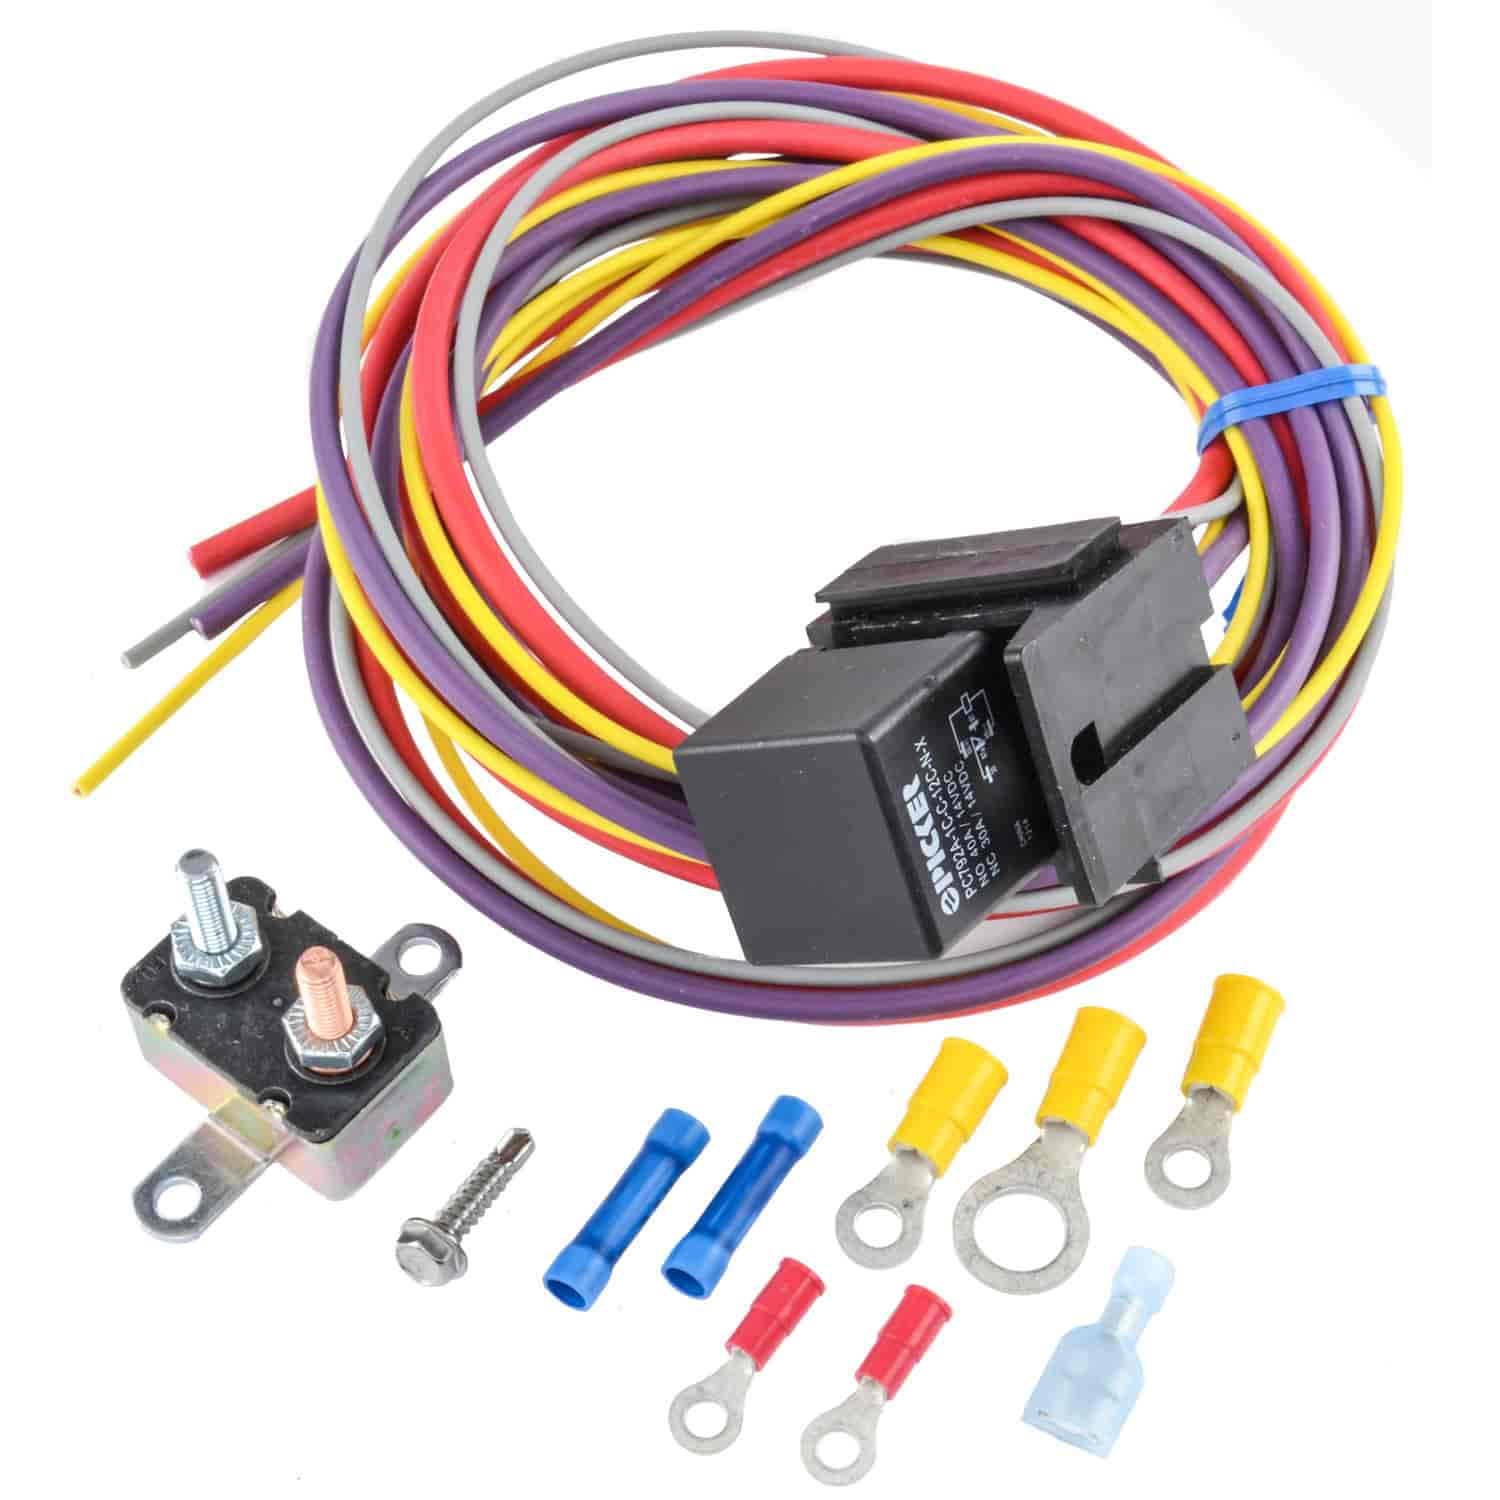 555 10559 jegs performance products 10559 manual controlled single fan jegs universal wiring harness at panicattacktreatment.co